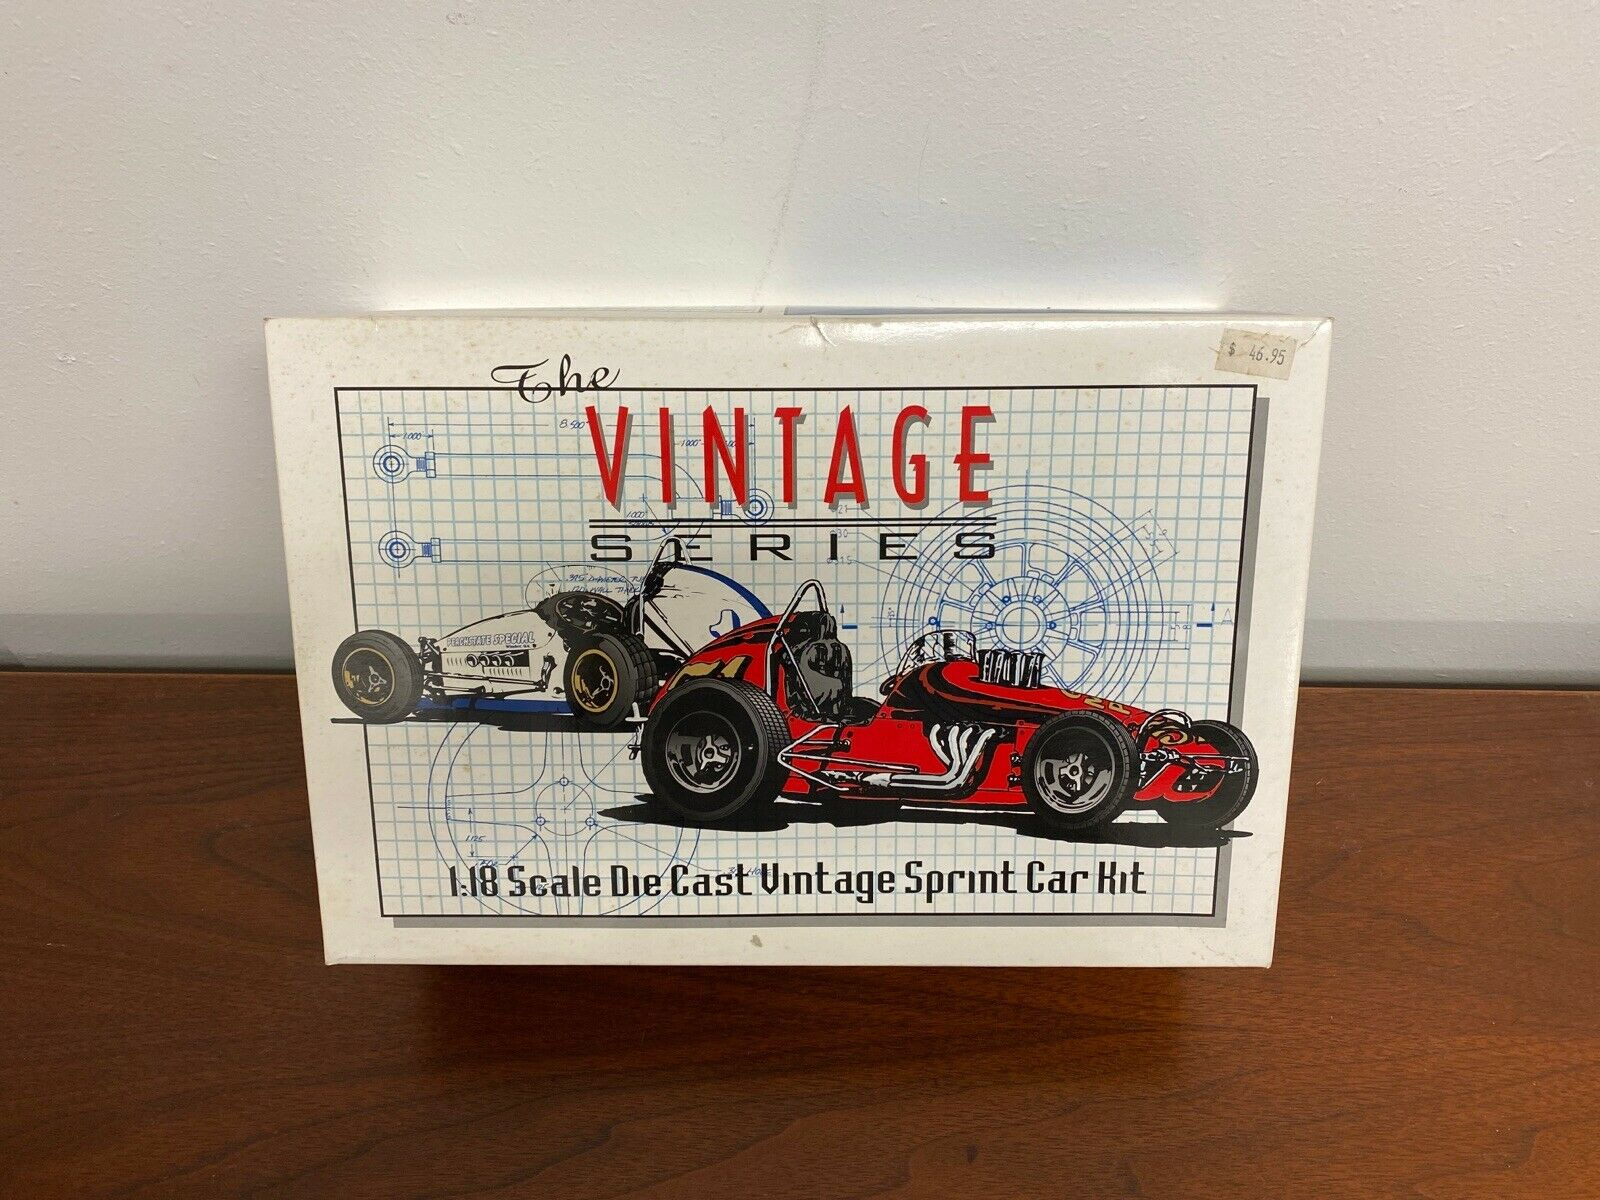 NIB GMP DIECAST 1 18 Scale Vintage SPRINT CAR Kit The Vintage Series